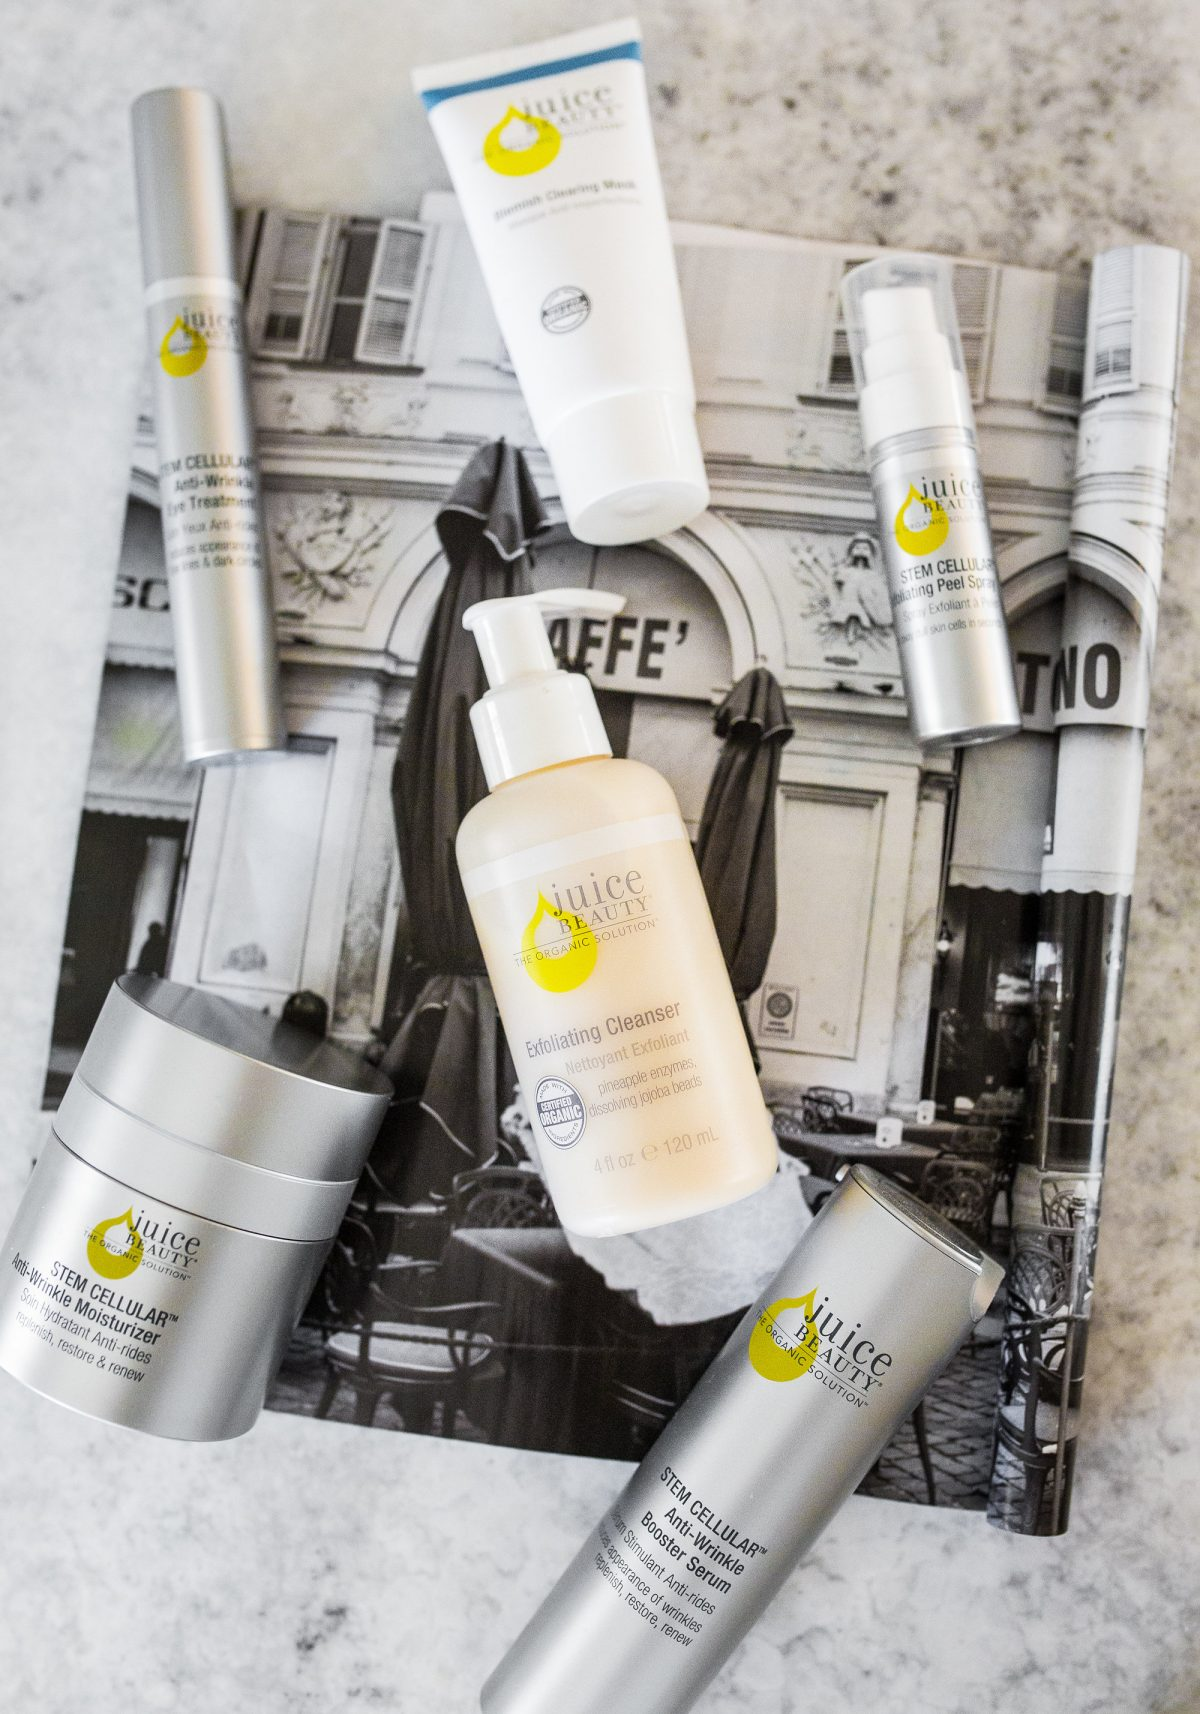 Favorite products from Juice Beauty Organic Skincare line